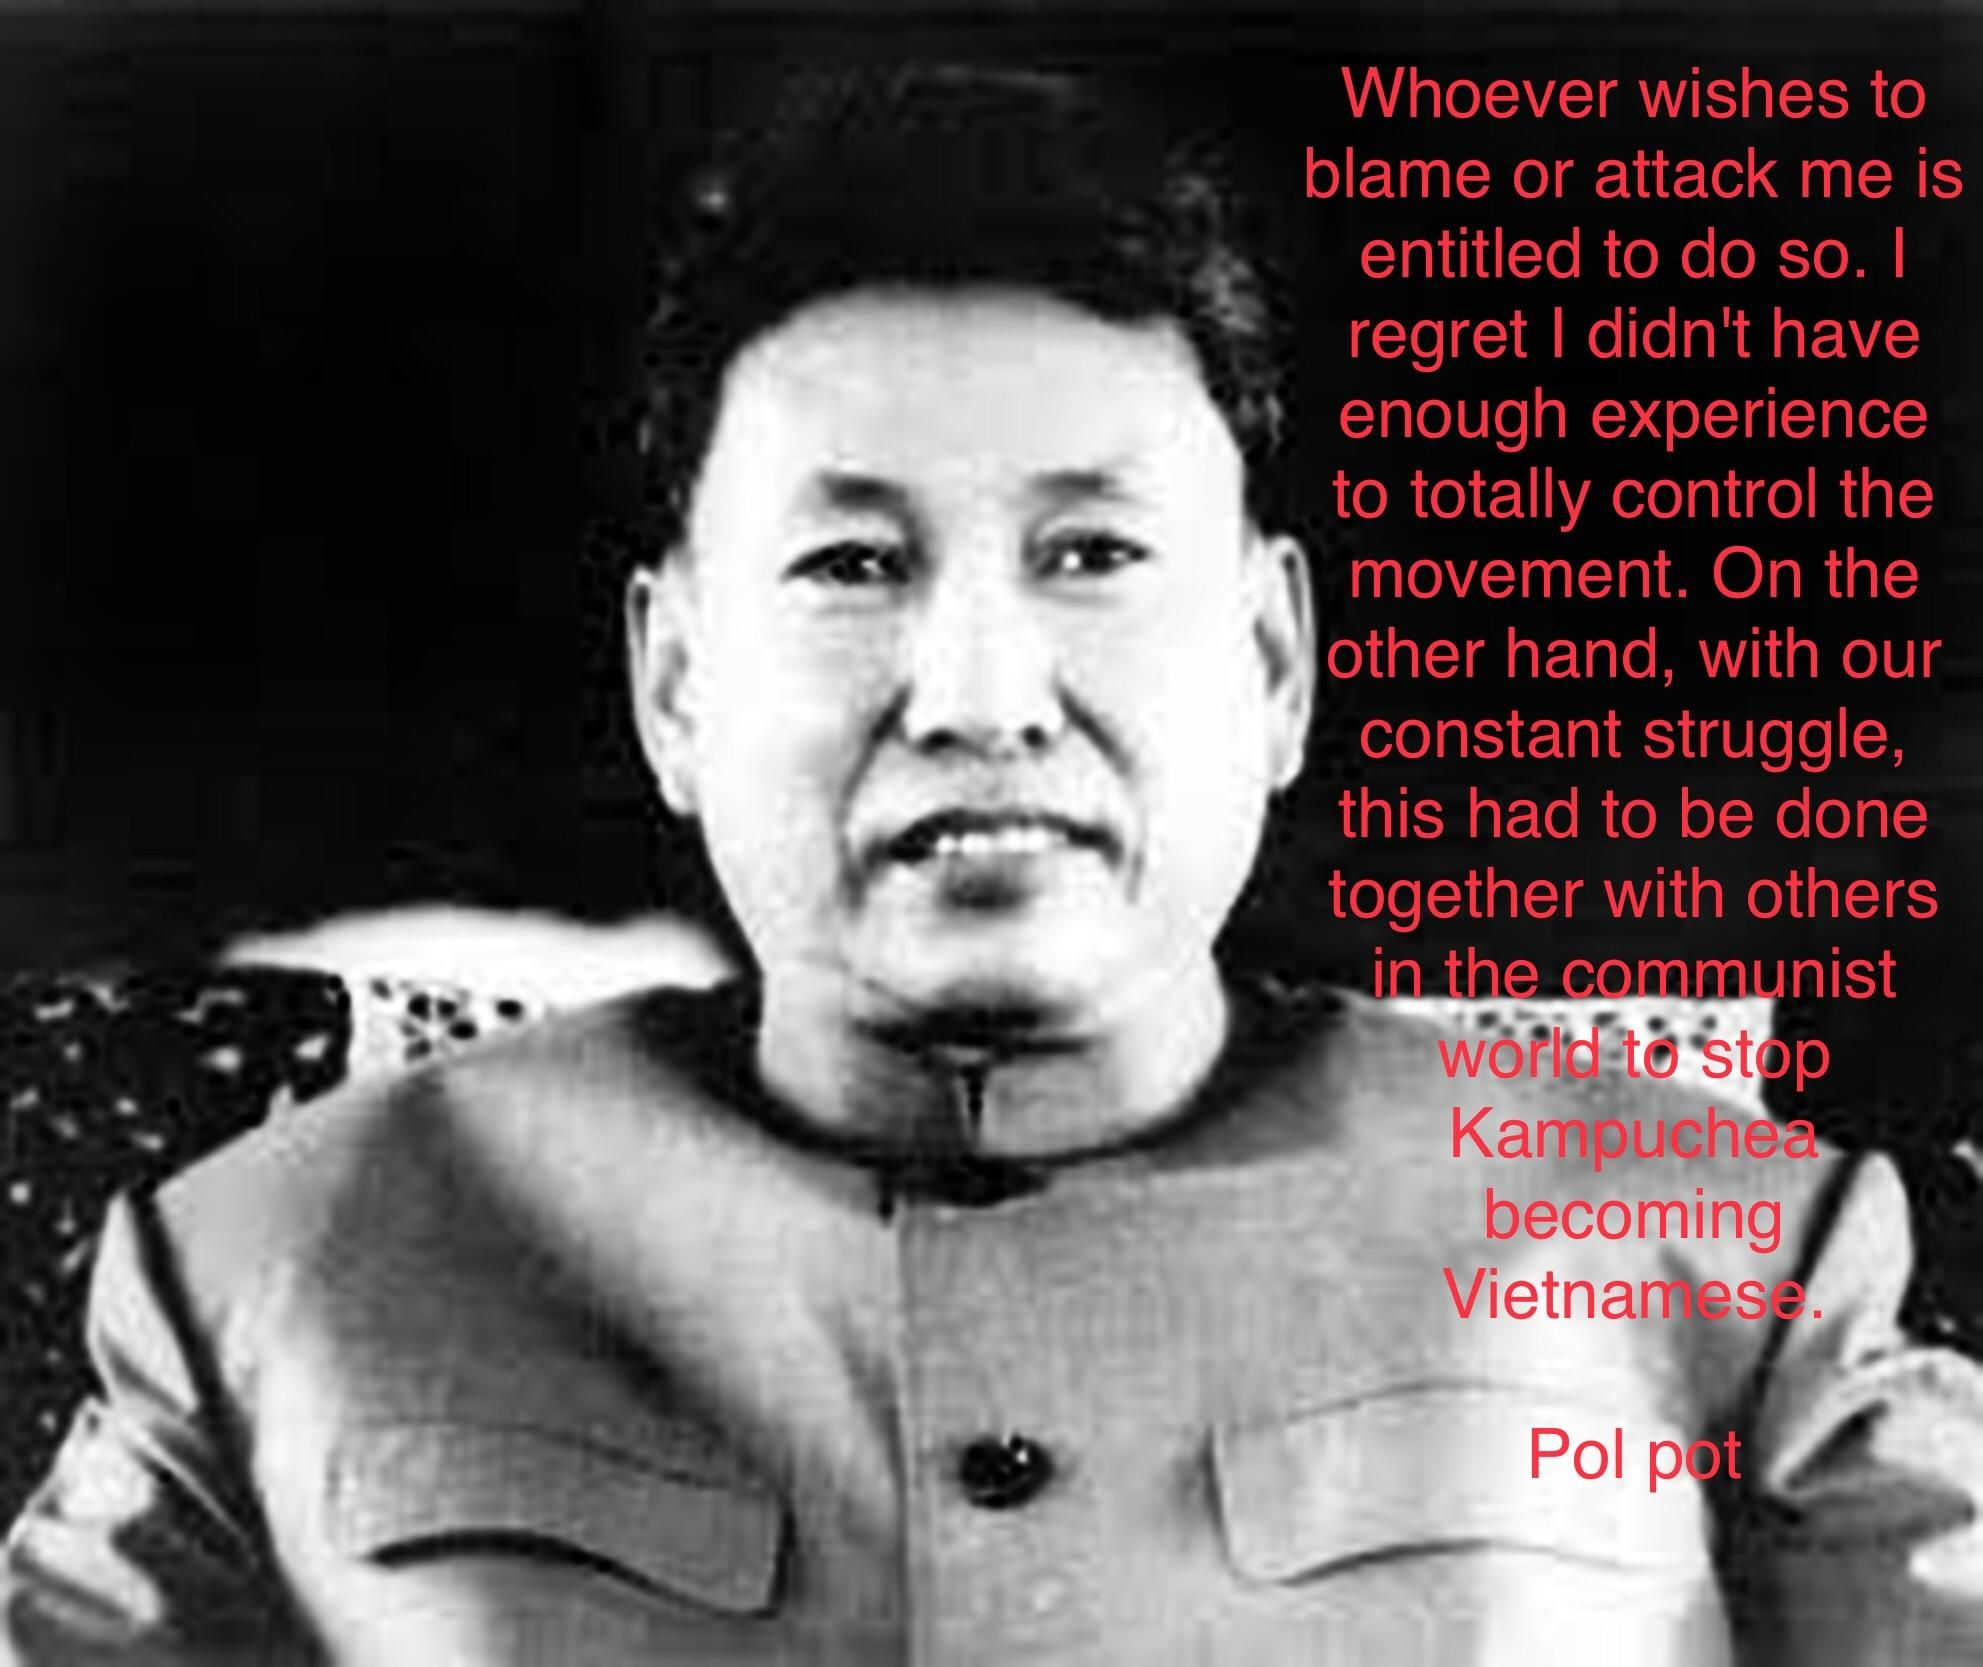 Pol Pot Quotes Mesmerizing Whoever Wishes To Blame Or Attack Me Is Entitled To Do Sopol .